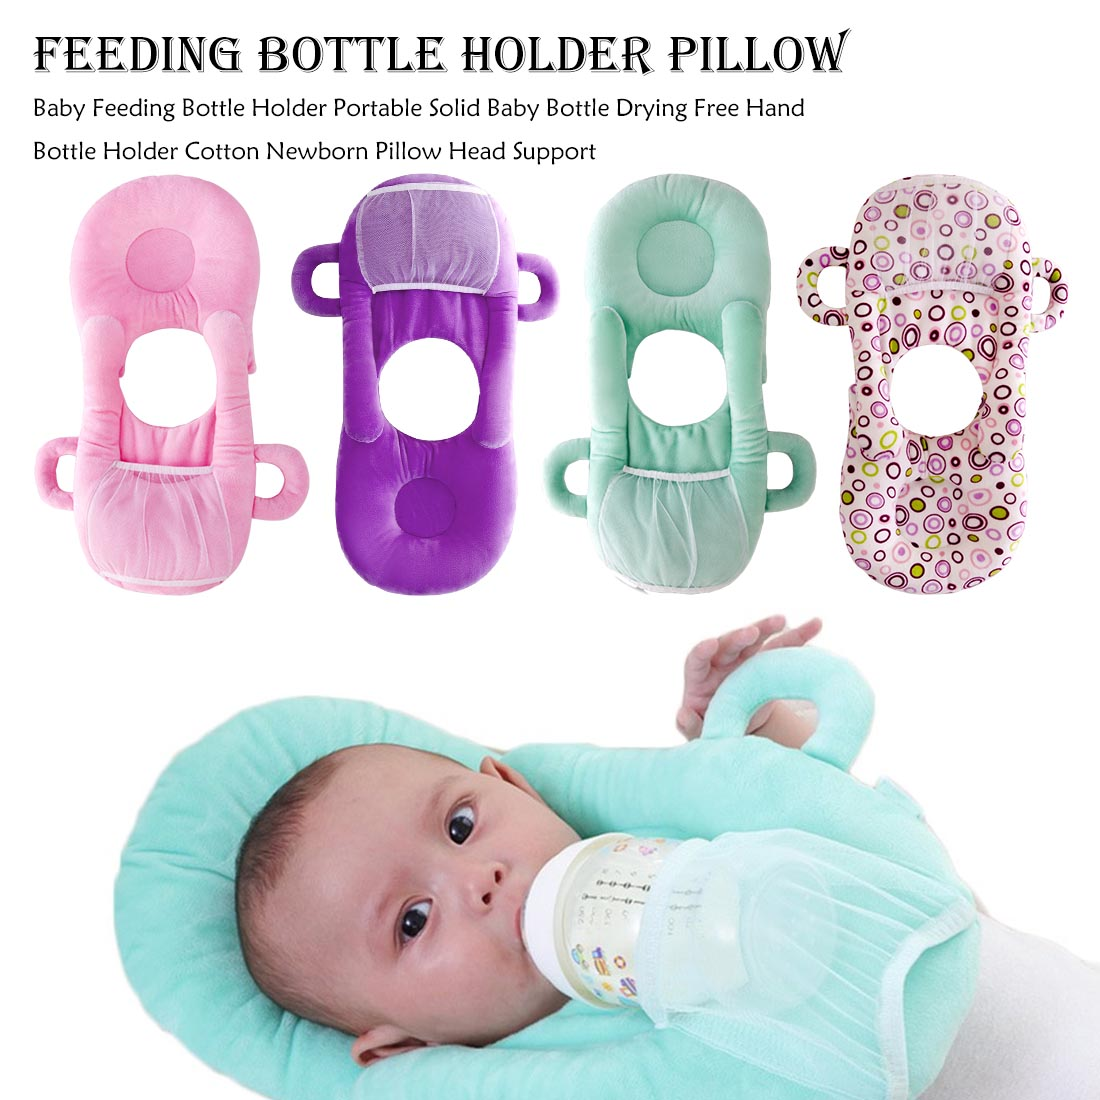 Infant Baby Bottle  Free Hand Bottle Holder Cotton Baby Milk Bottle Feeding Cup Learning Nursing Pillow Cushion